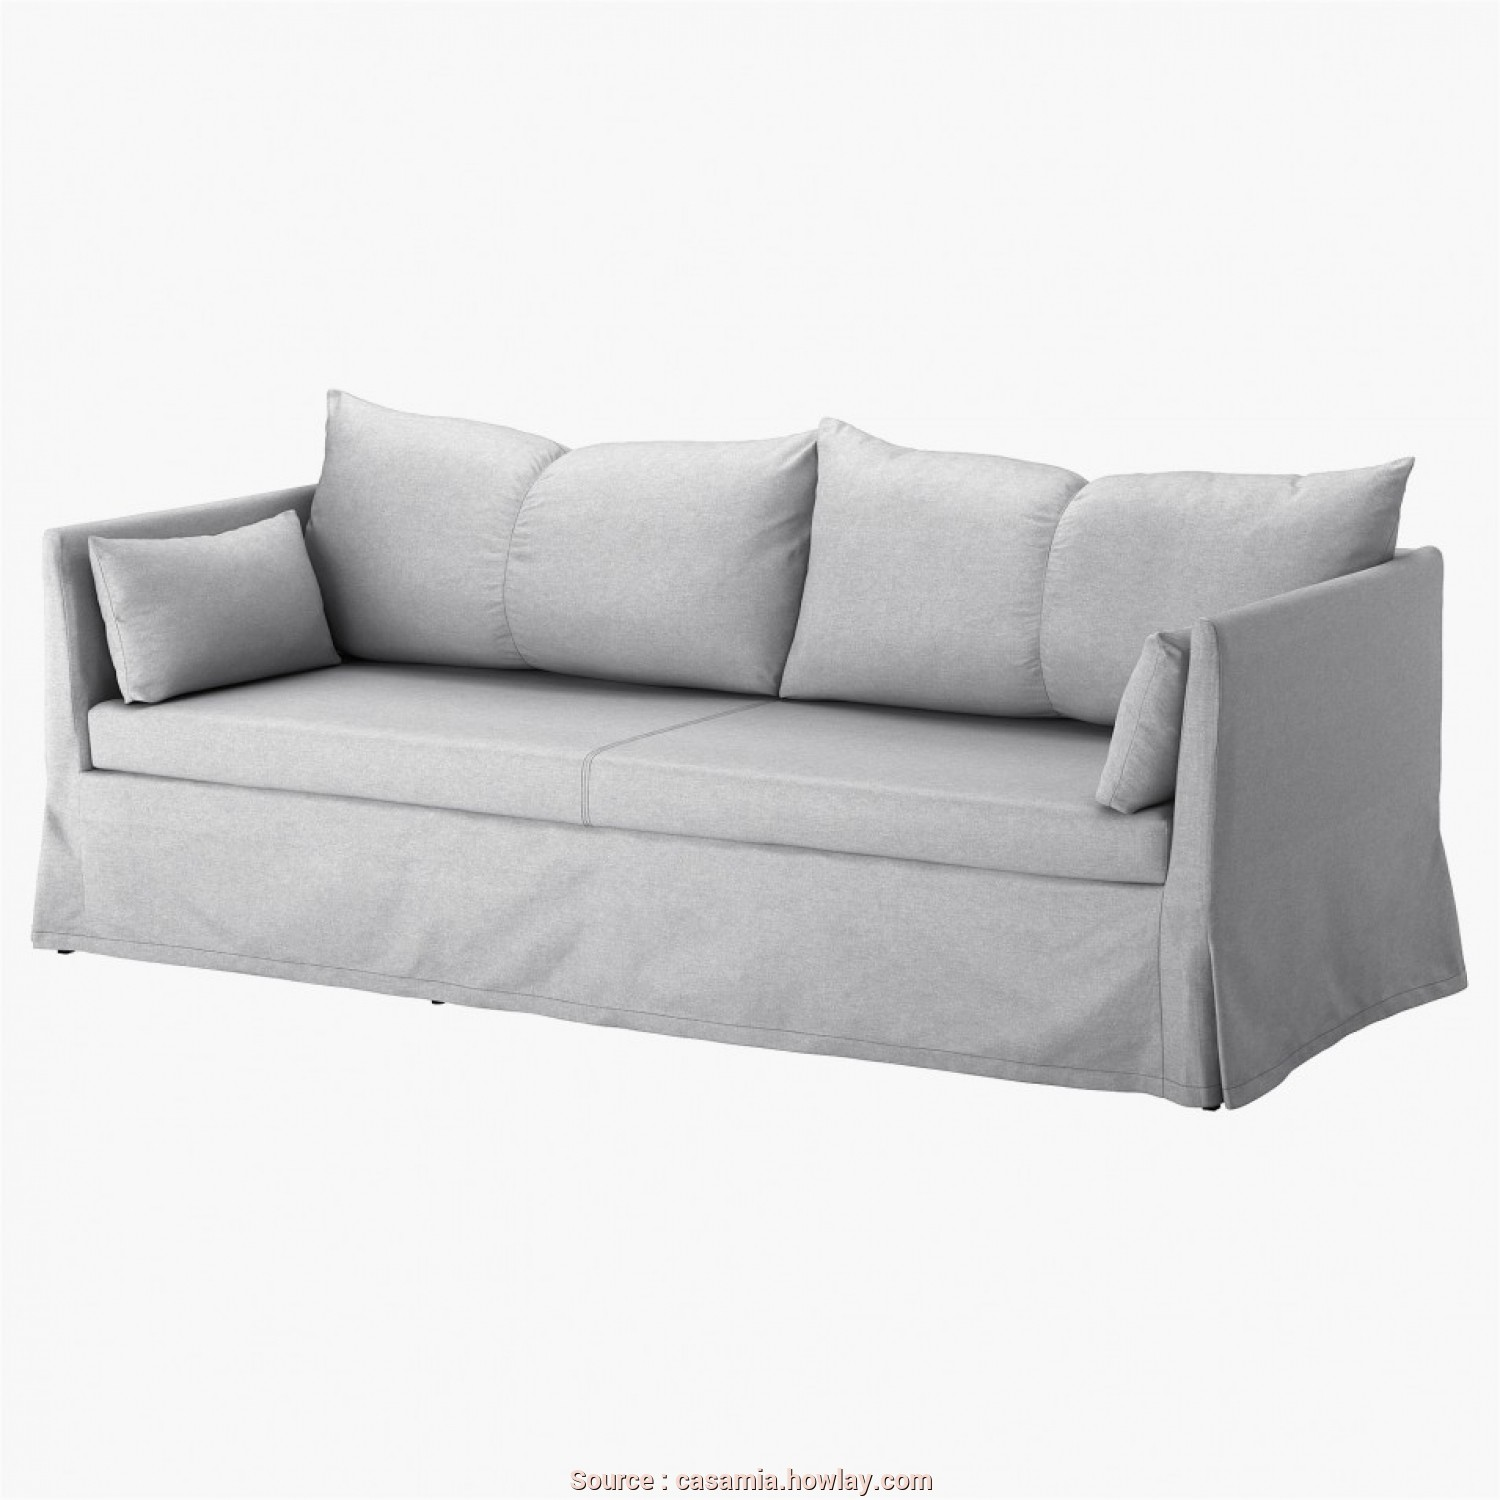 Divano Ikea Friheten Grigio, Loveable Furniture: Ikea Friheten, Modern Minimalist Living Room Design